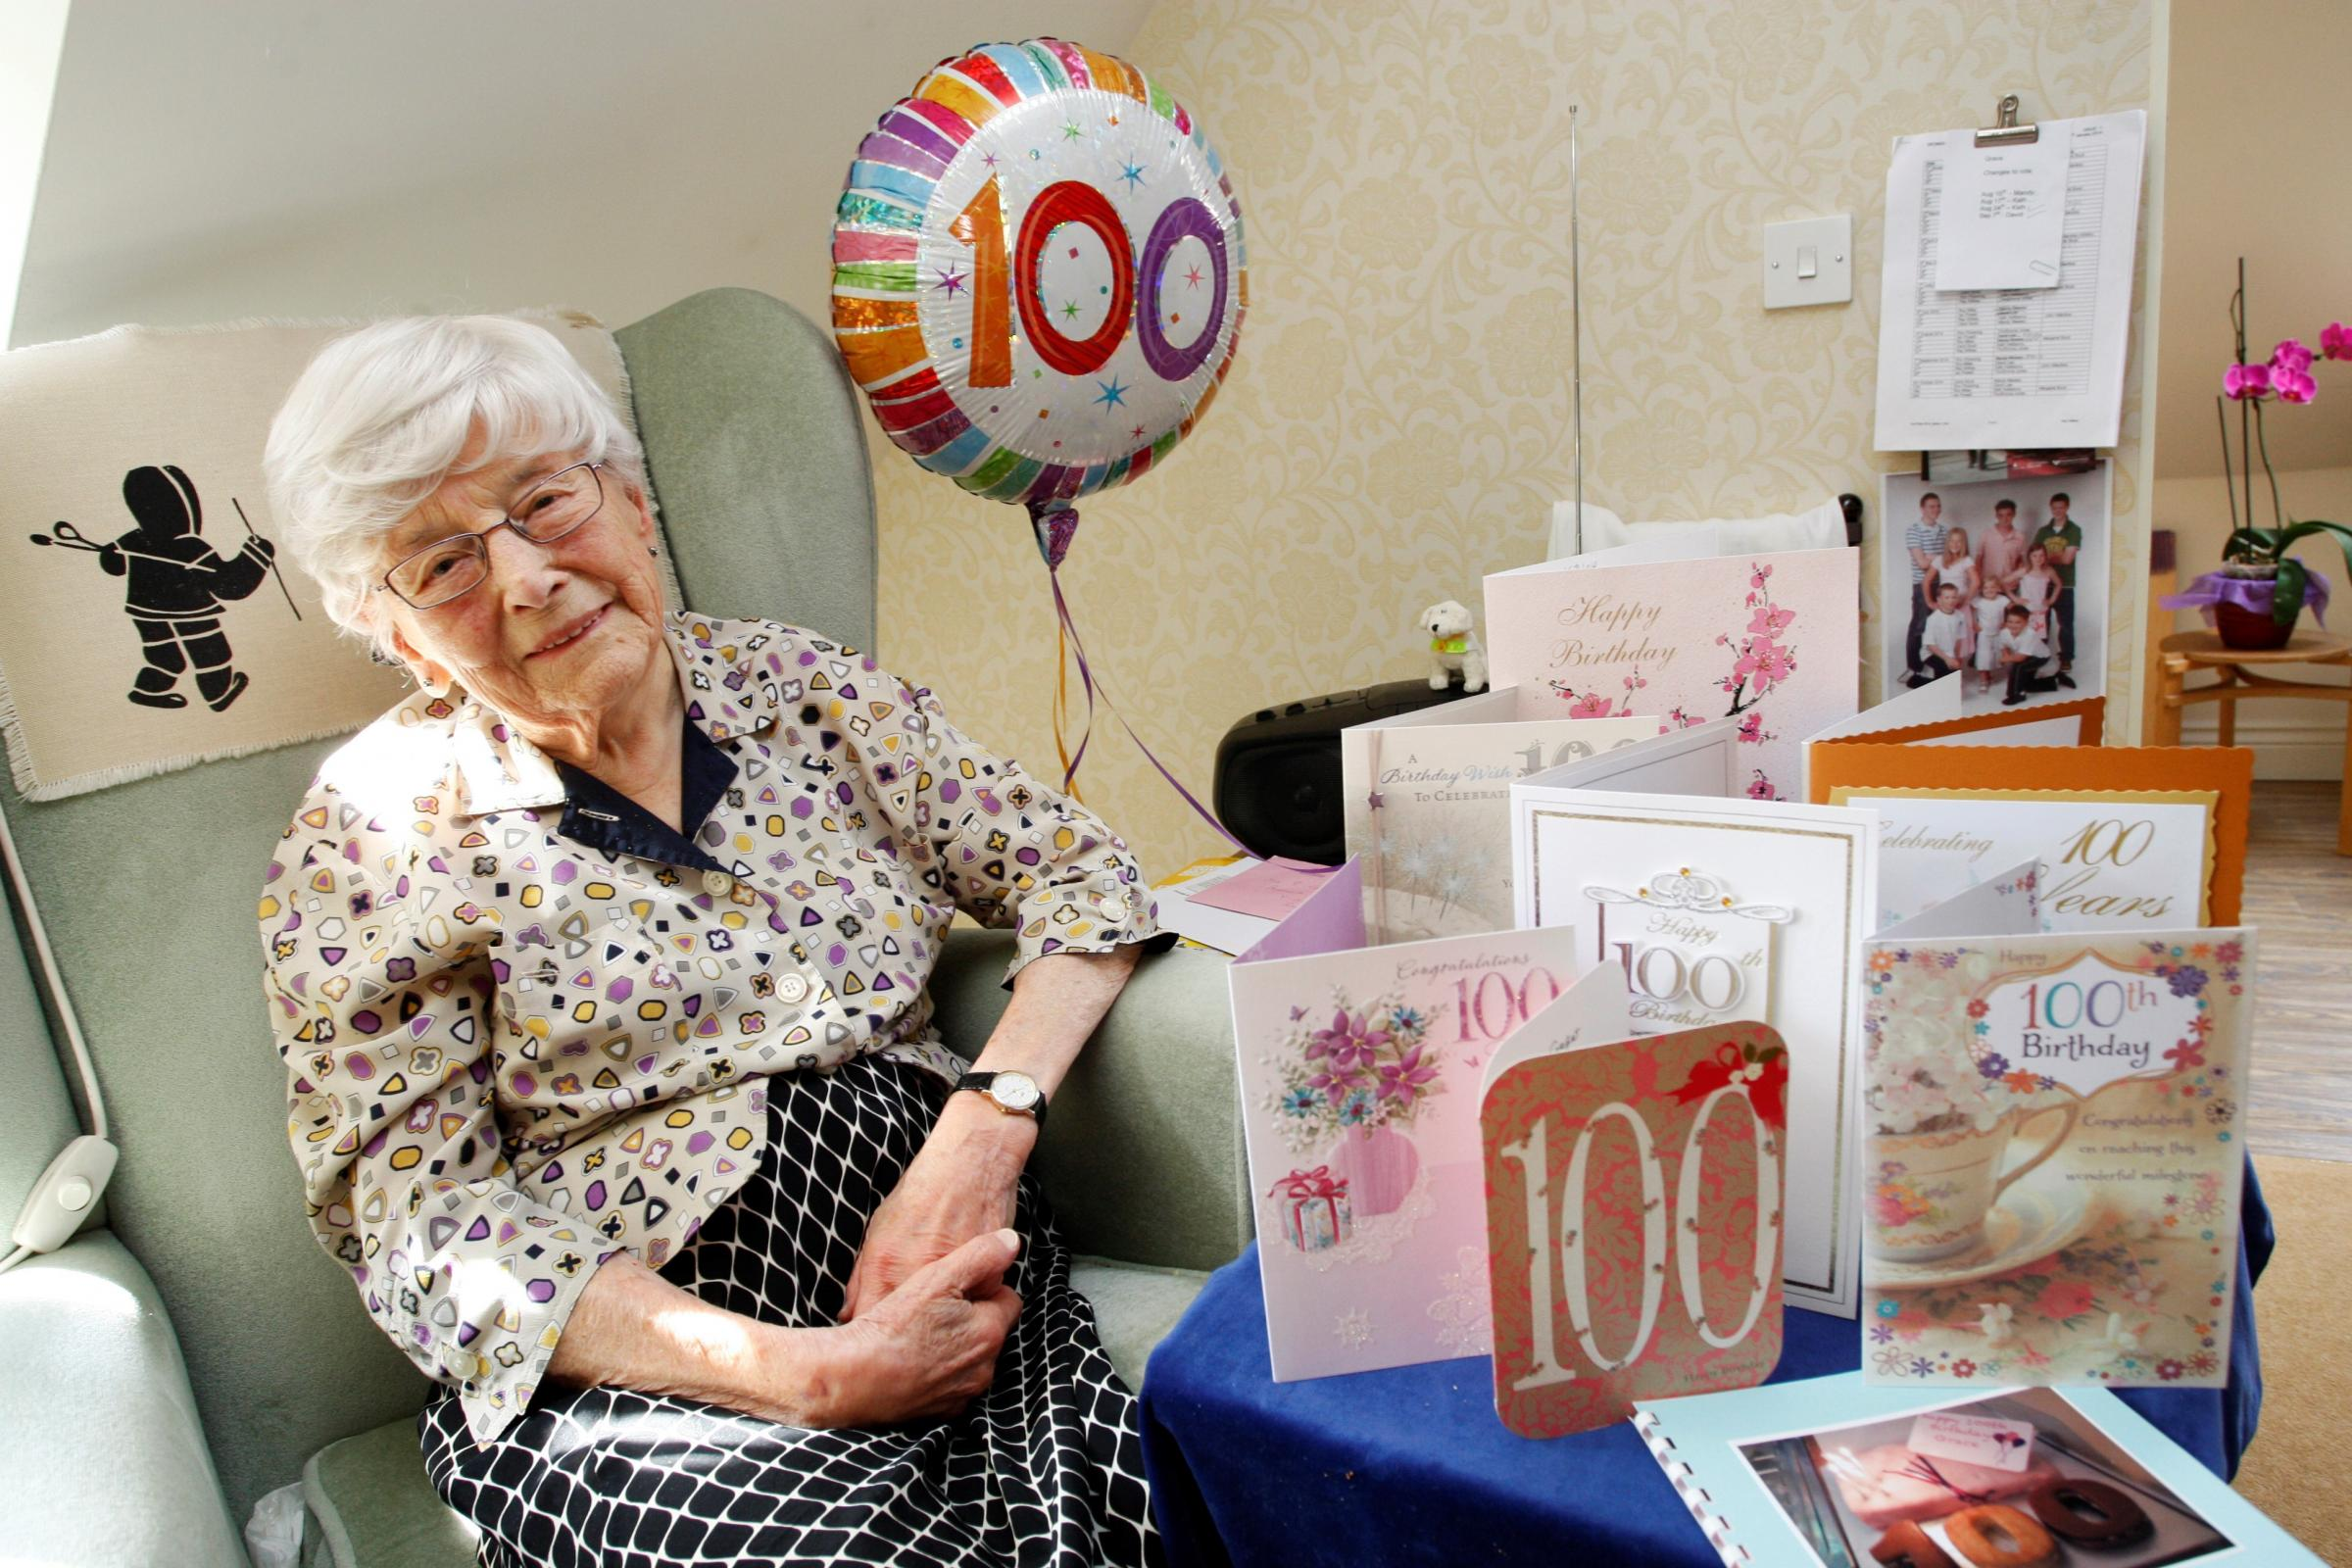 Grace Cooper celebrated her 100th birthday at Burcot Grange